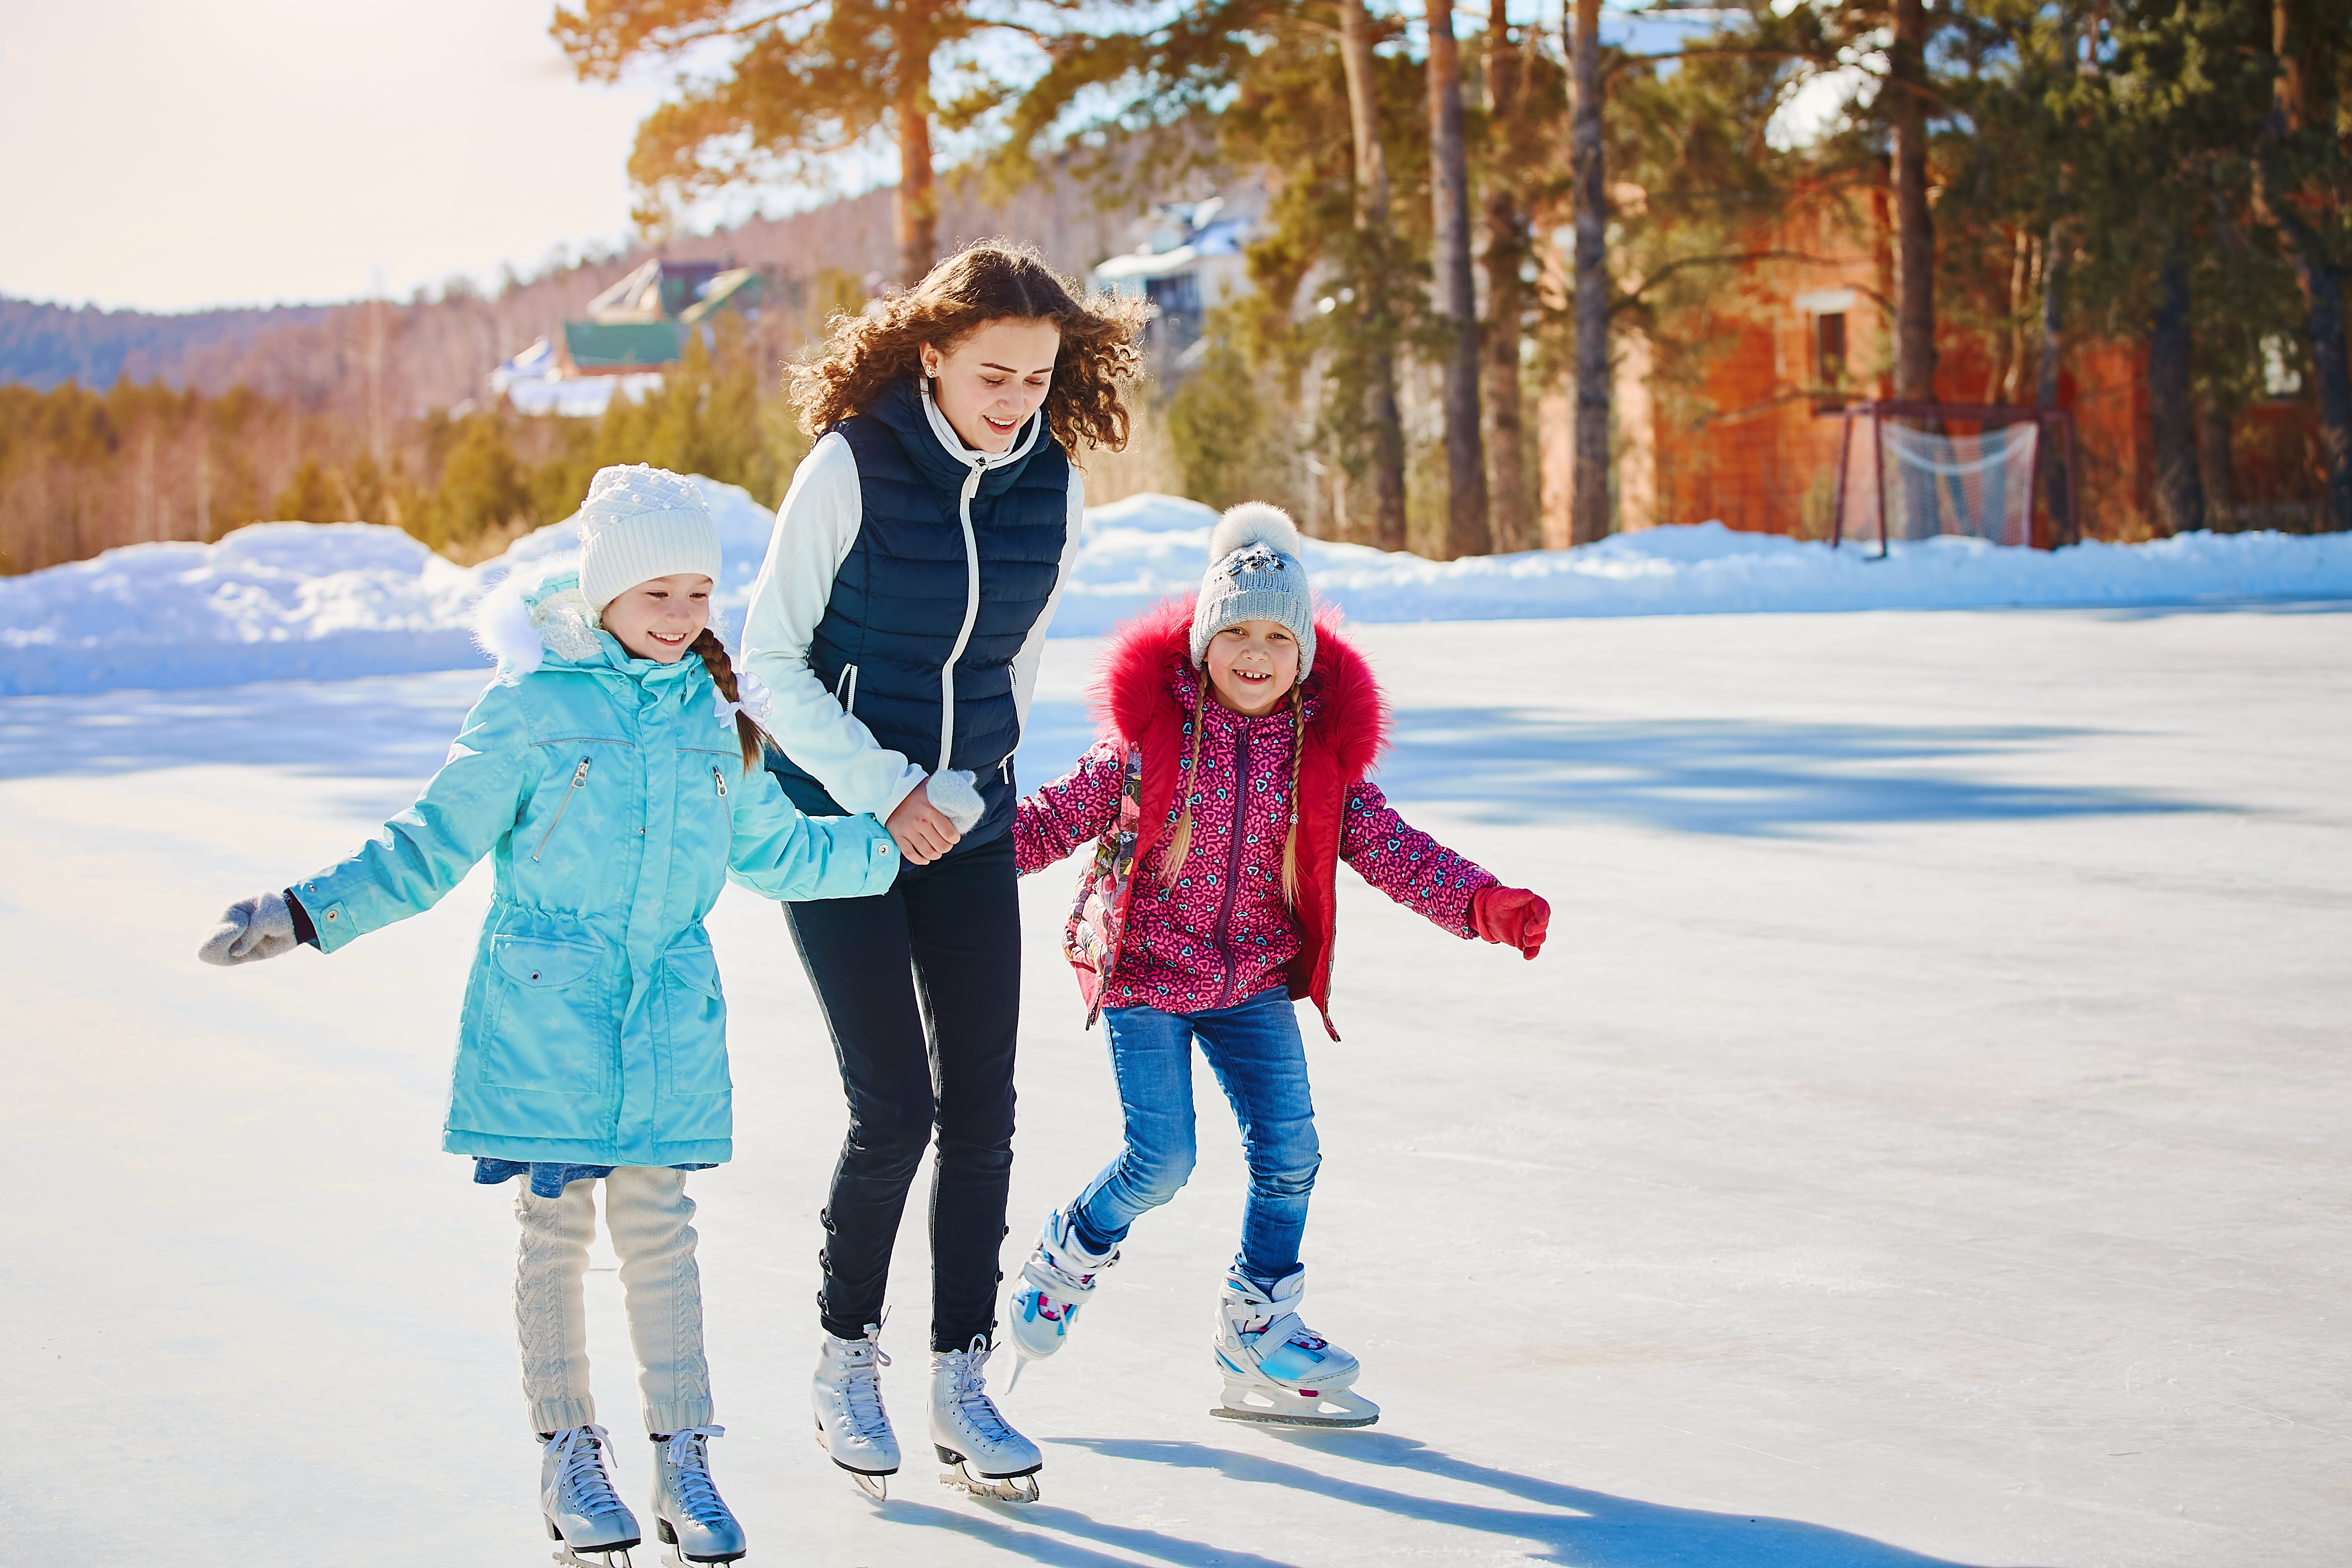 A group of three girls on a winter skating rink. Roll and laugh. Skating rink in nature